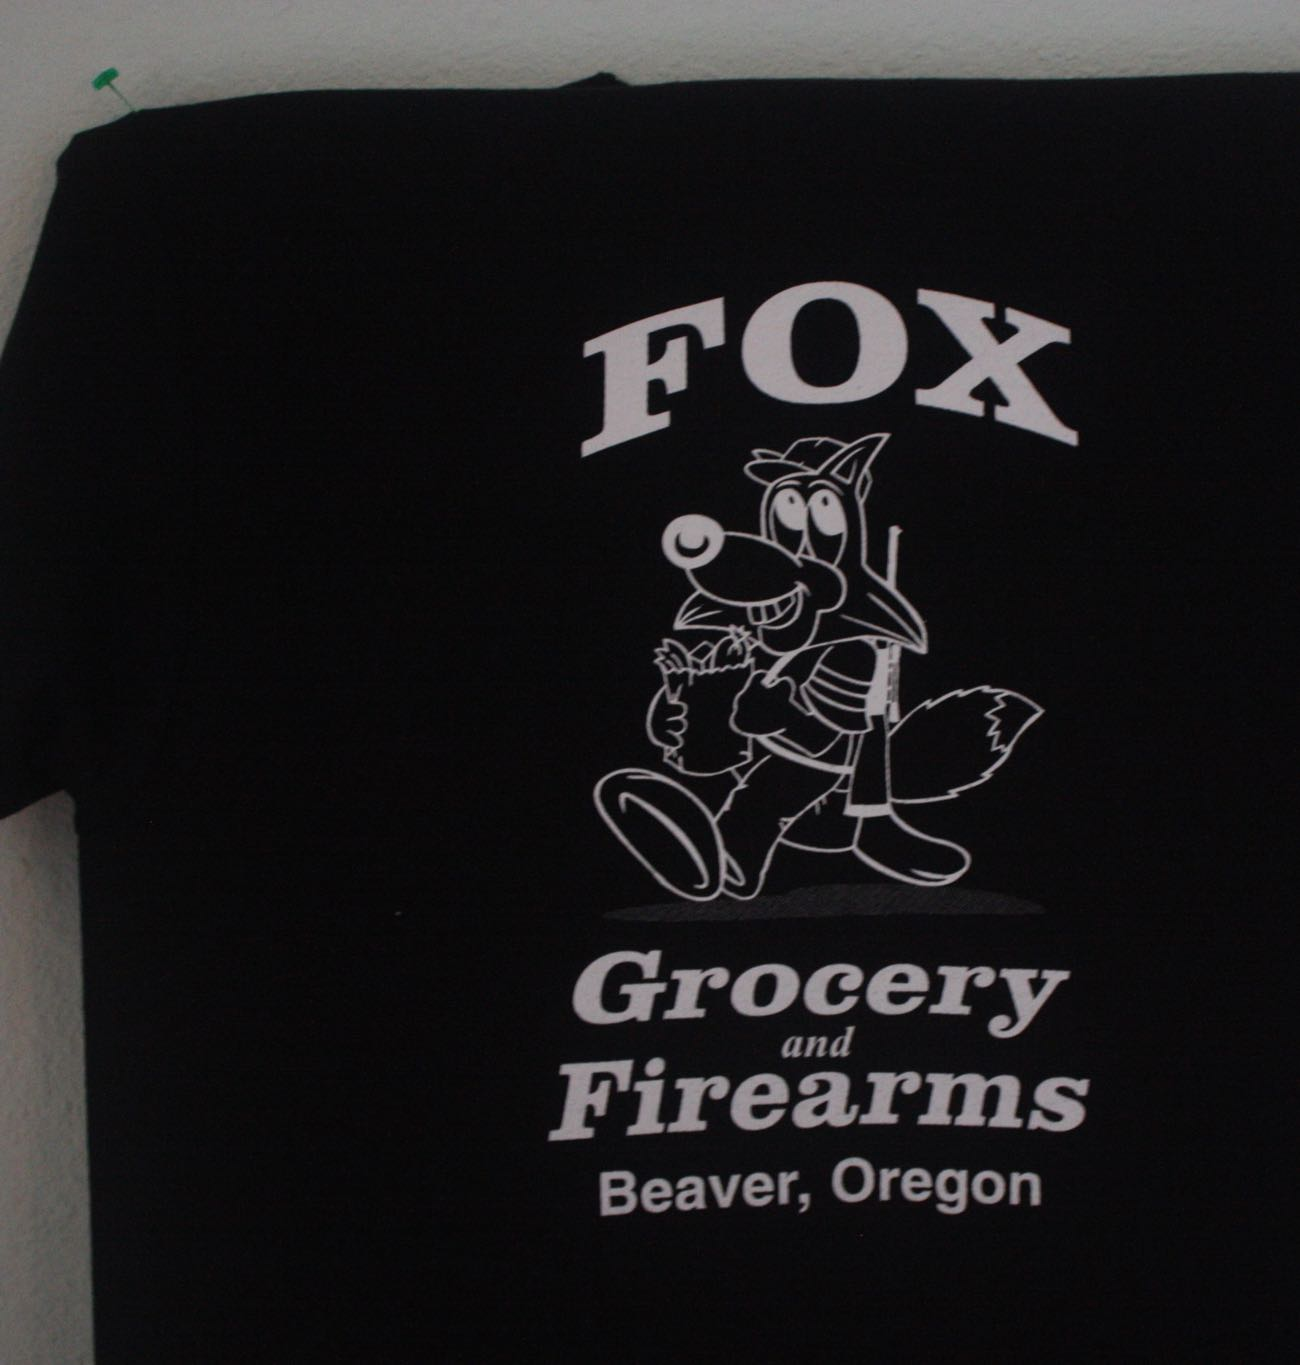 Fox Guns and Groceries 1